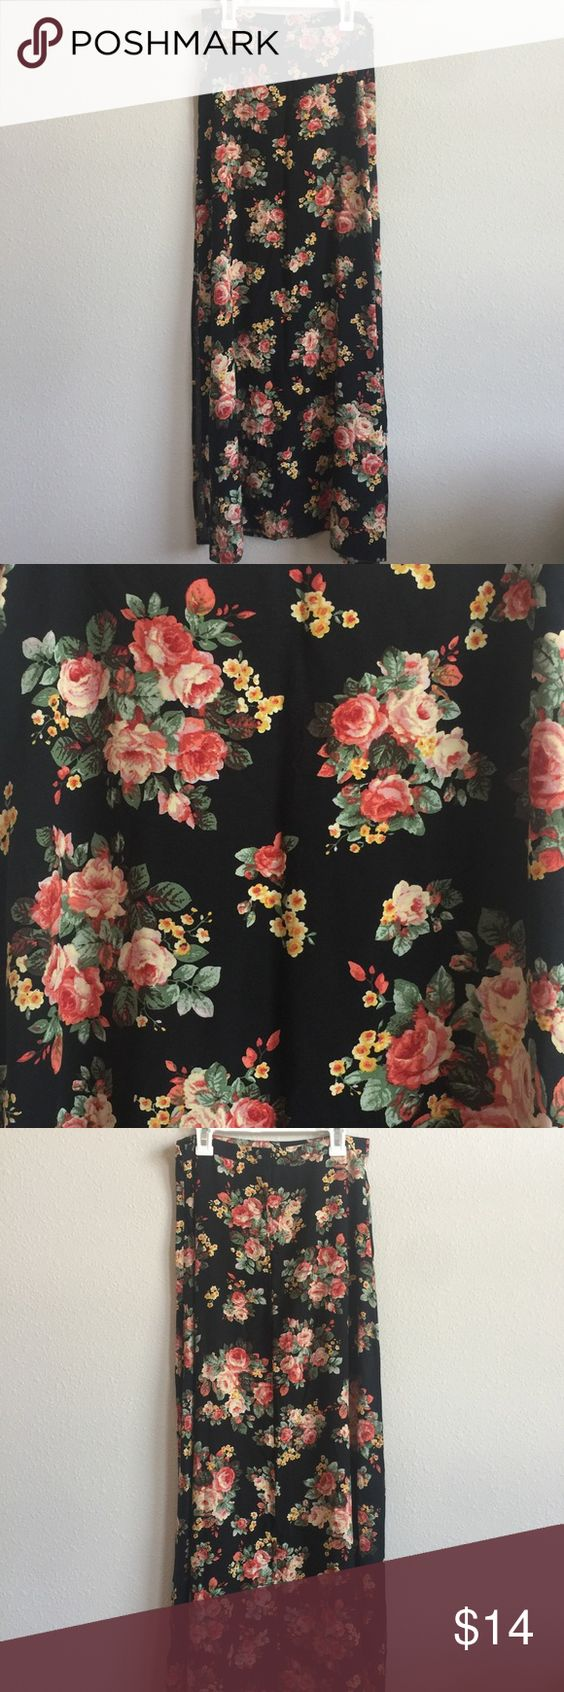 """Forever 21 Full Length Skirt XS Forever 21 black with floral pattern skirt with 2 side slits. Skirt has a side zipper closure. Entire skirt measures about 39"""" from top to bottom, each slit is about 27"""". Size XS. Forever 21 Skirts Maxi"""